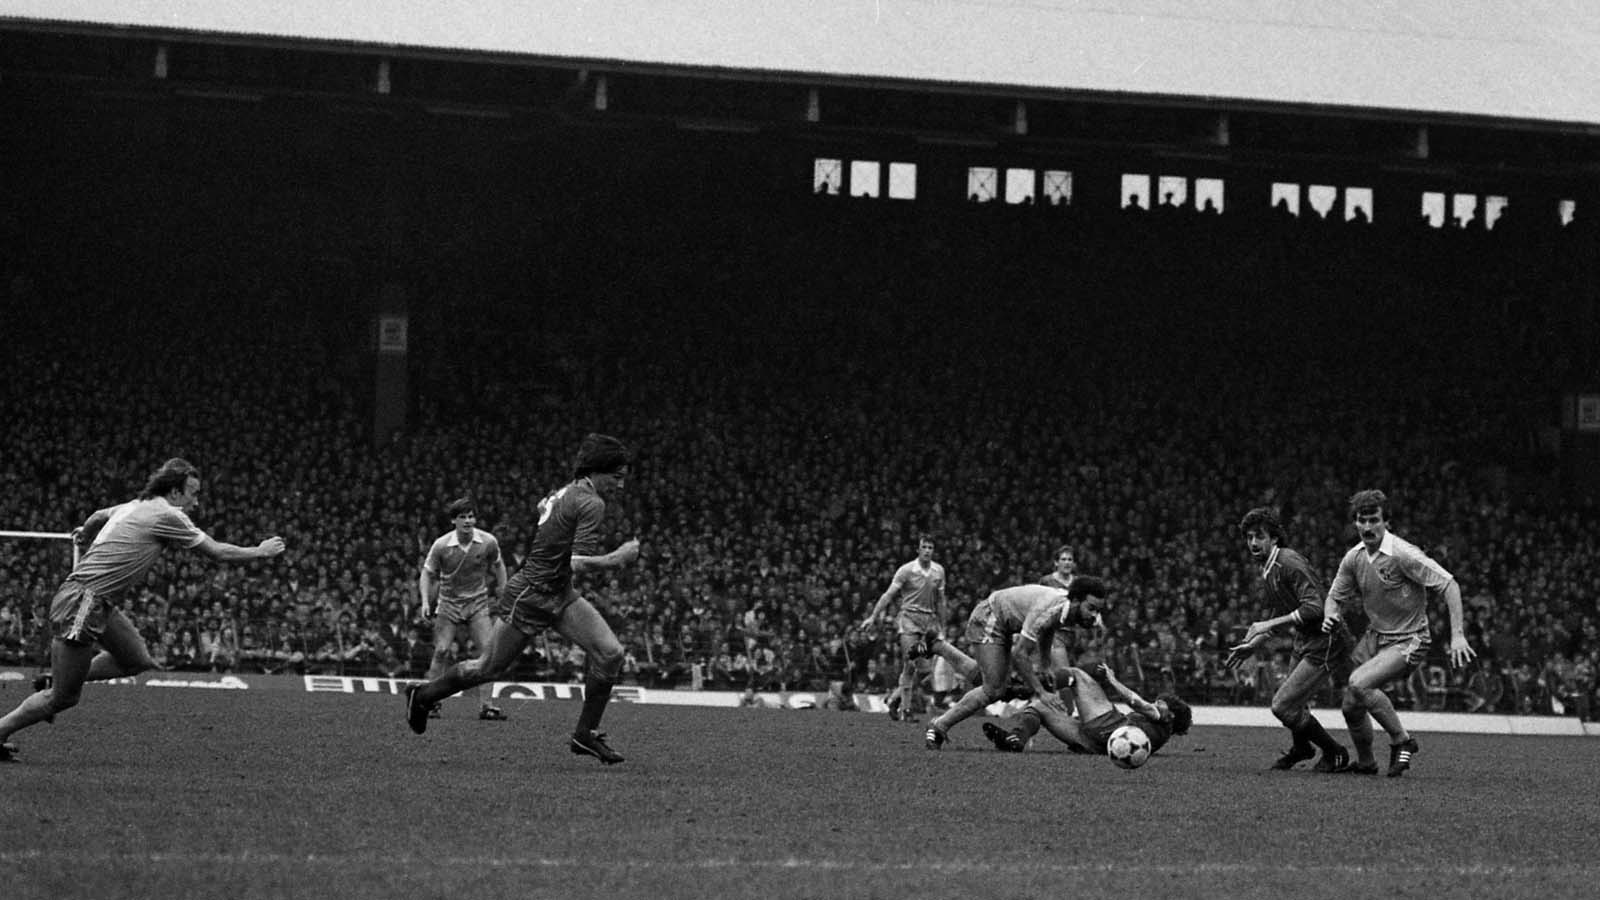 black and white photo of players running towards a ball during a football match